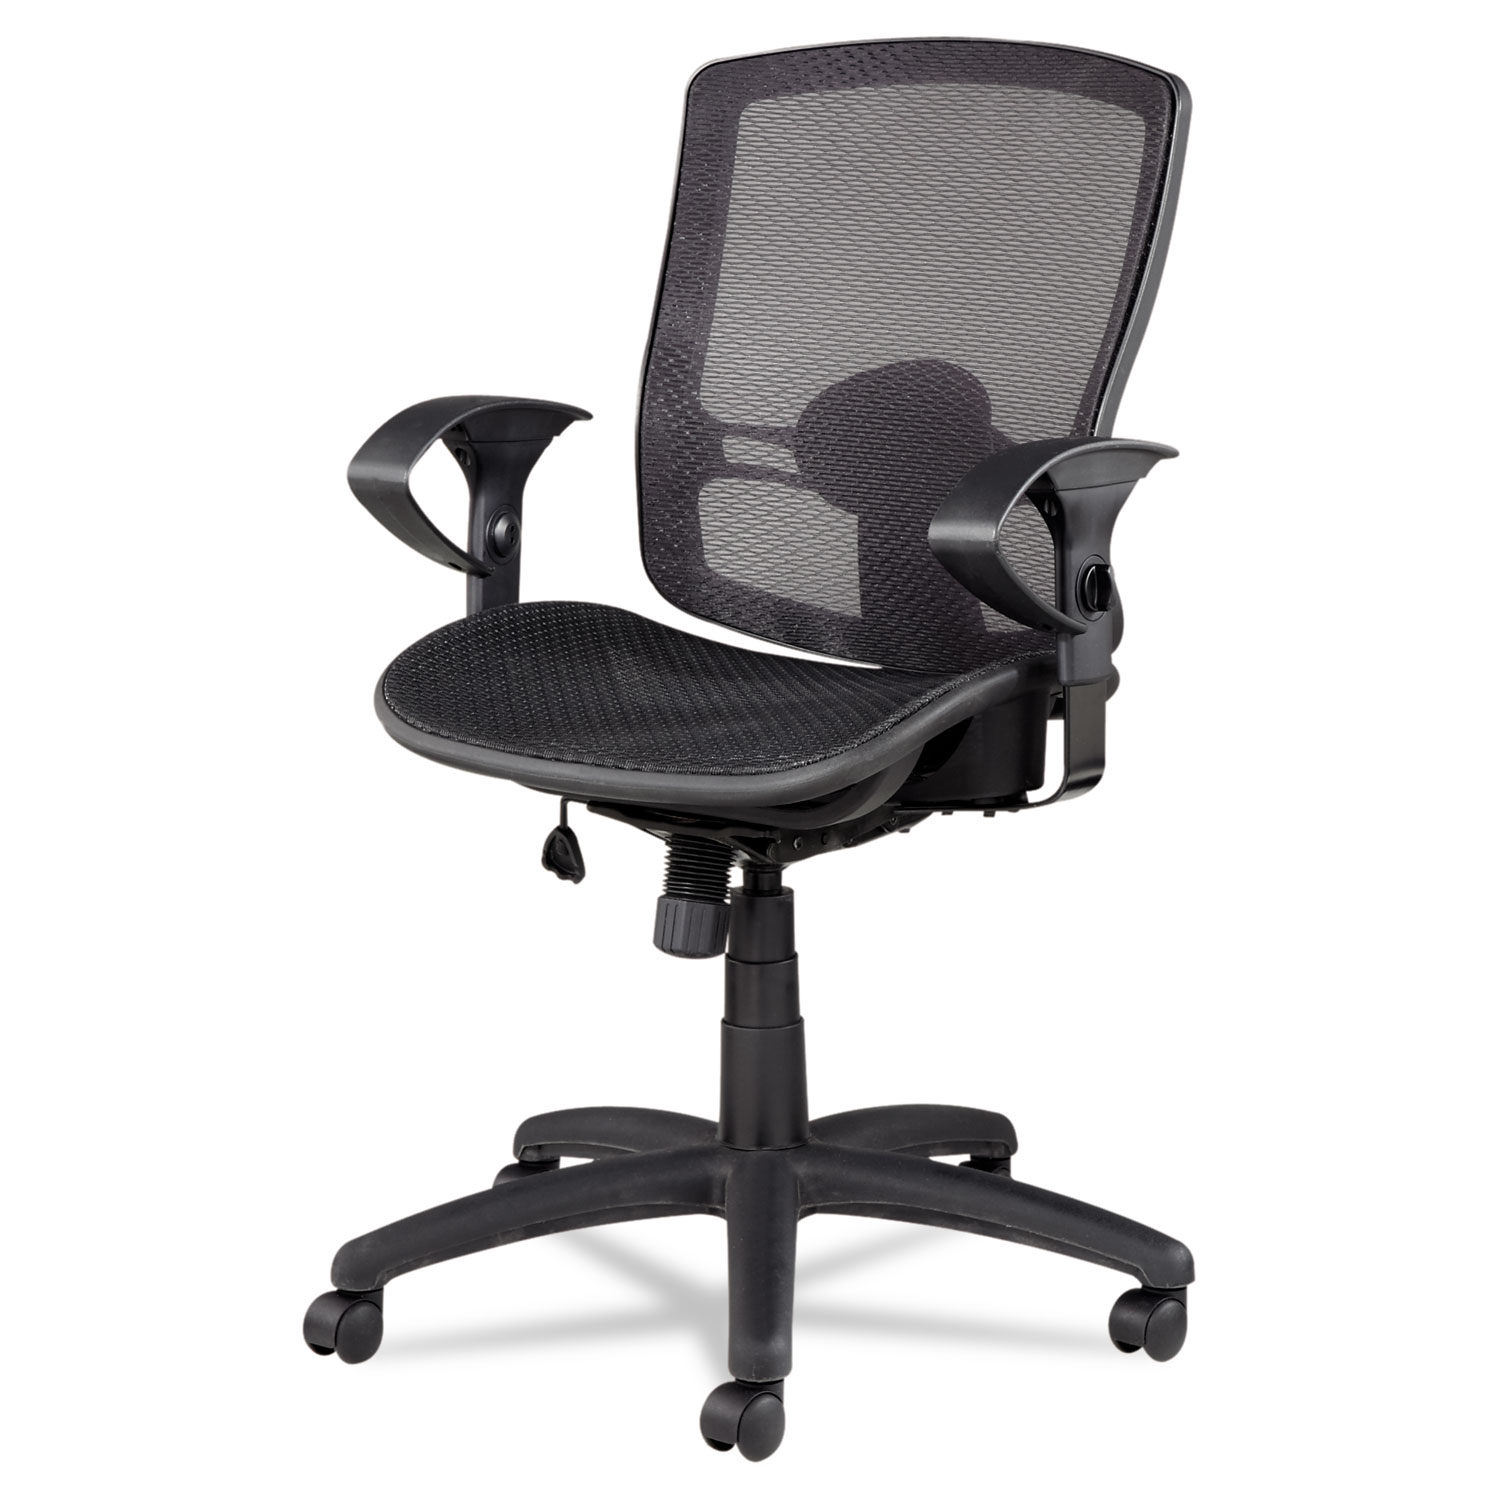 office mesh wave chairs ltd absolute shop orange task seat back chair